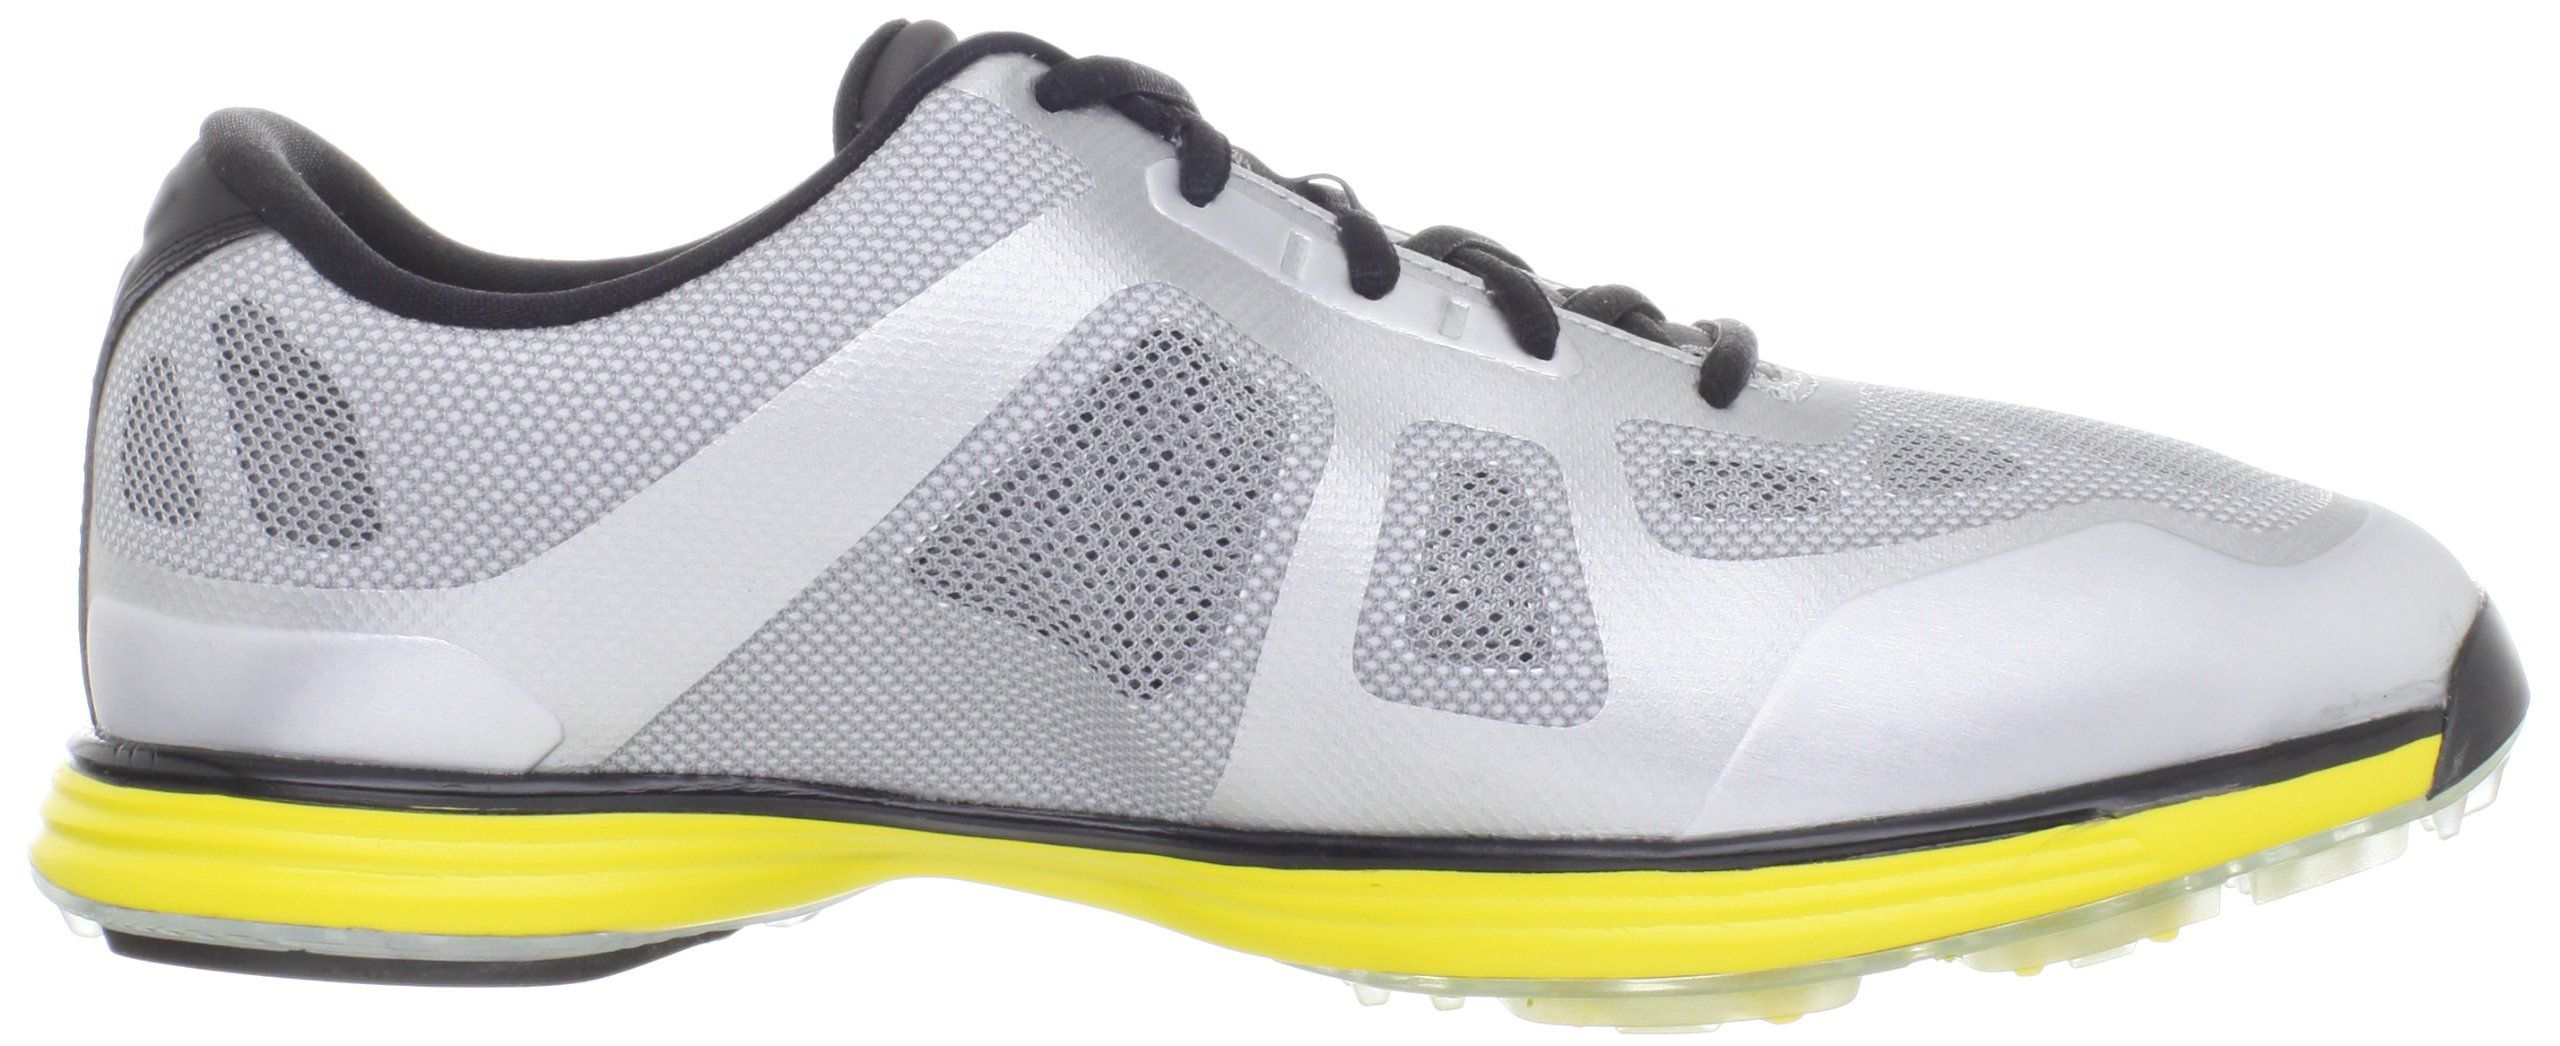 half off 646a8 cbfb5 Golf Shoes     Nike Golf Mens Nike Lunar Ascend Golf ShoeStadium  Grey Metallic Silver Black8.5 M US     Continue to the item at the image  web link.